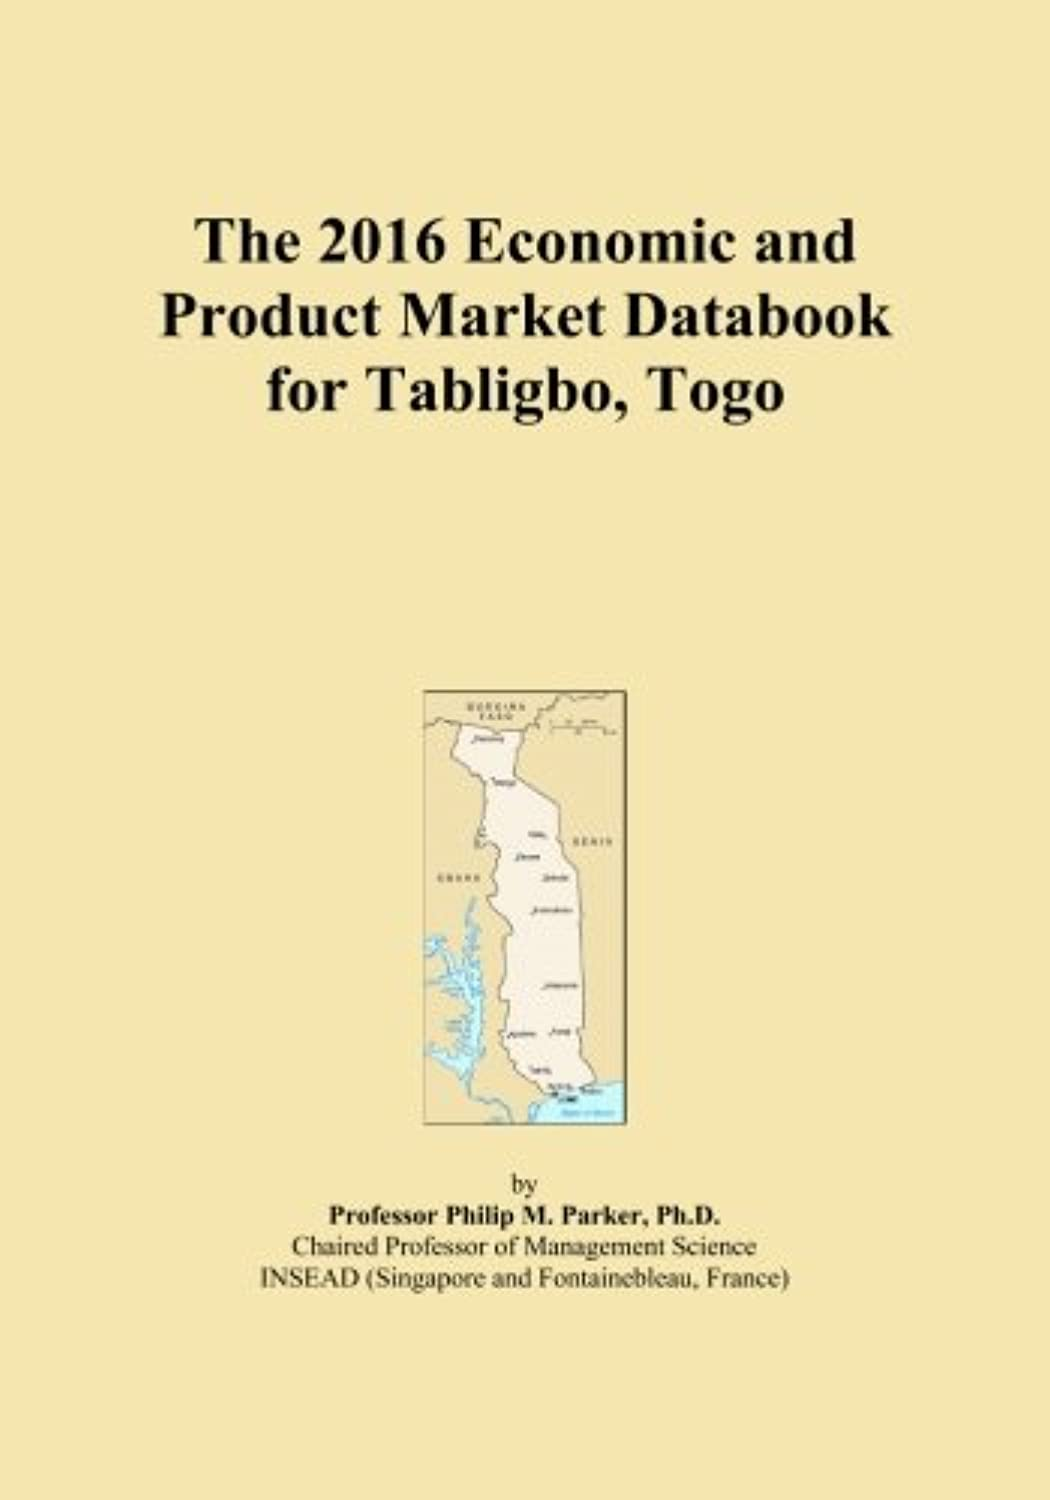 The 2016 Economic and Product Market Databook for Tabligbo, Togo